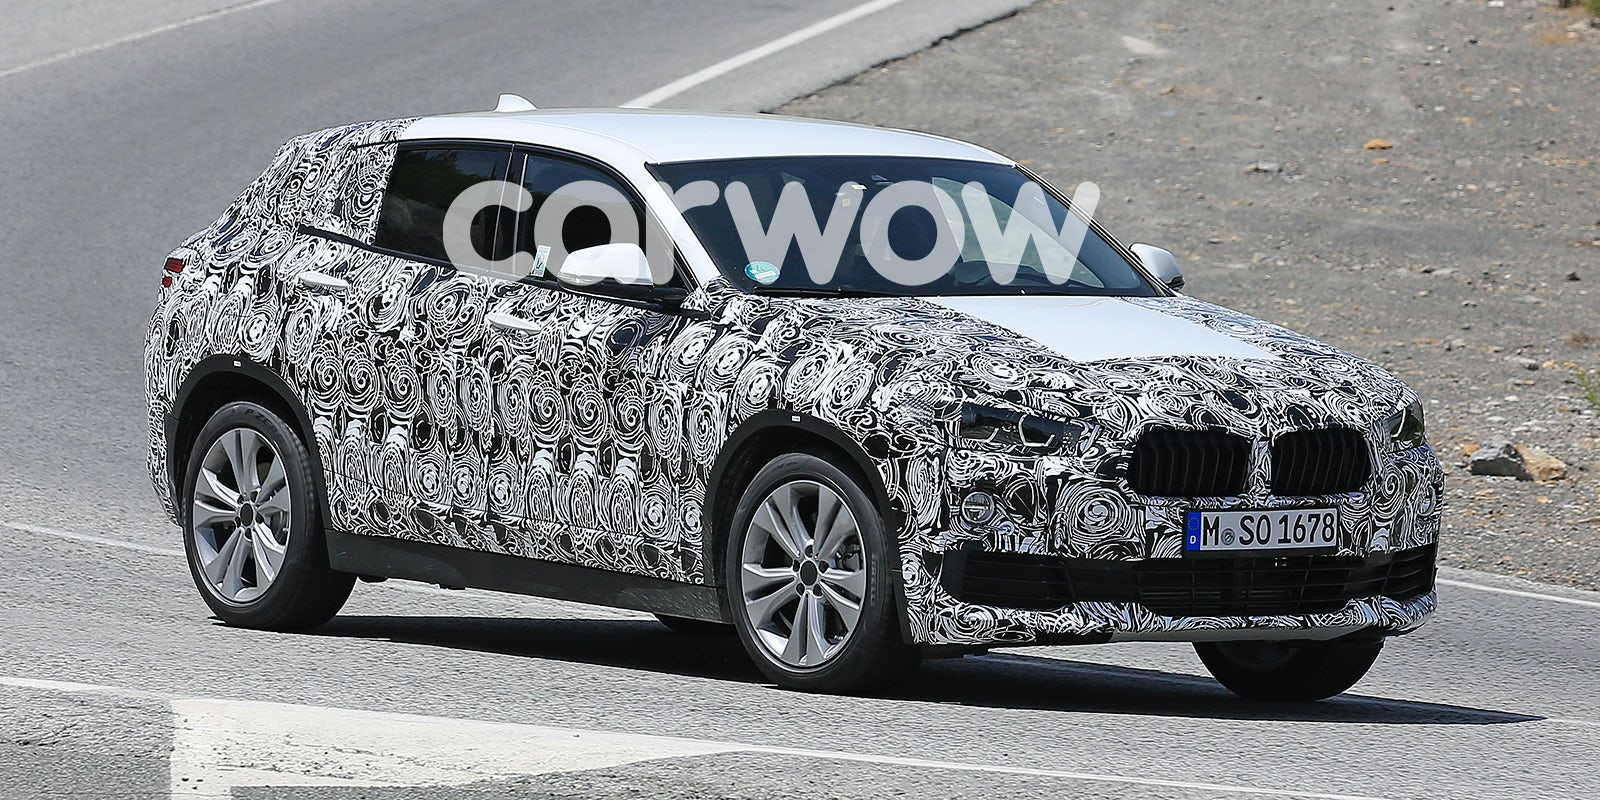 New bmw 8 series price specs release date carwow - Spy Shots Of Cars This Image Has Been Optimized For A Calibrated Screen With A Gamma Of 2 2 And A Colour Temperature Of 6500 K